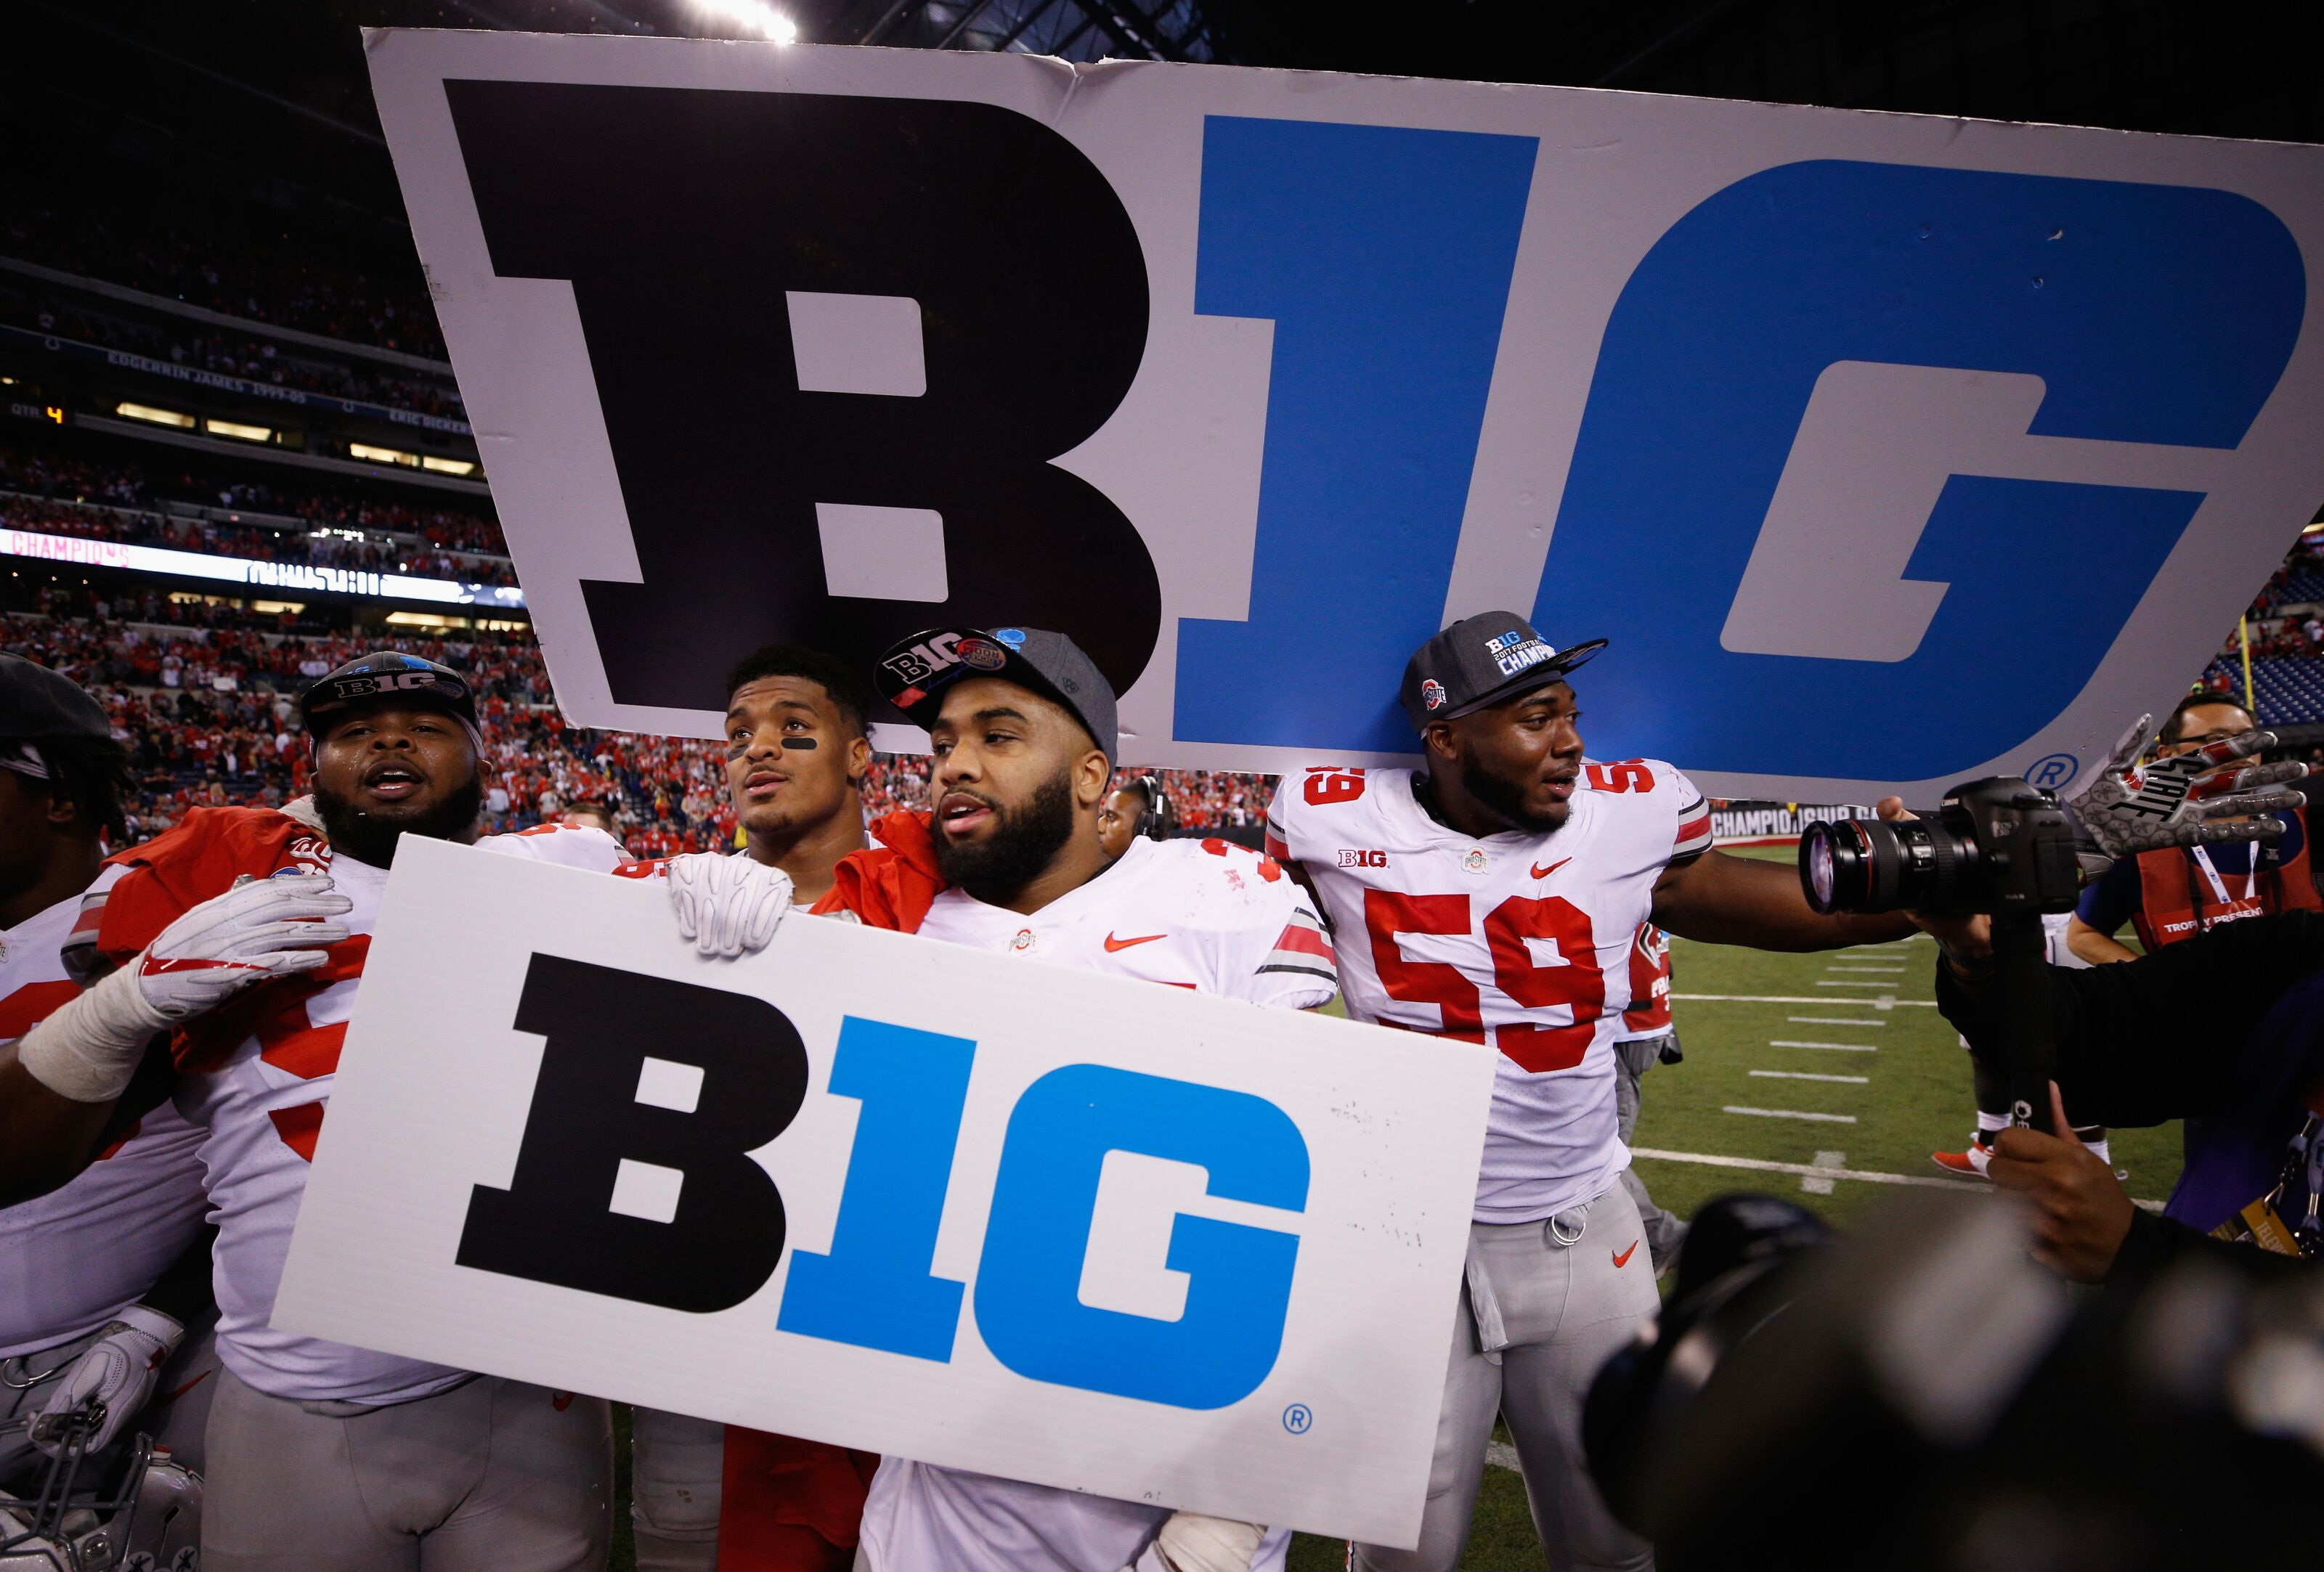 Ohio State Football: Don't take for granted another year, another championship